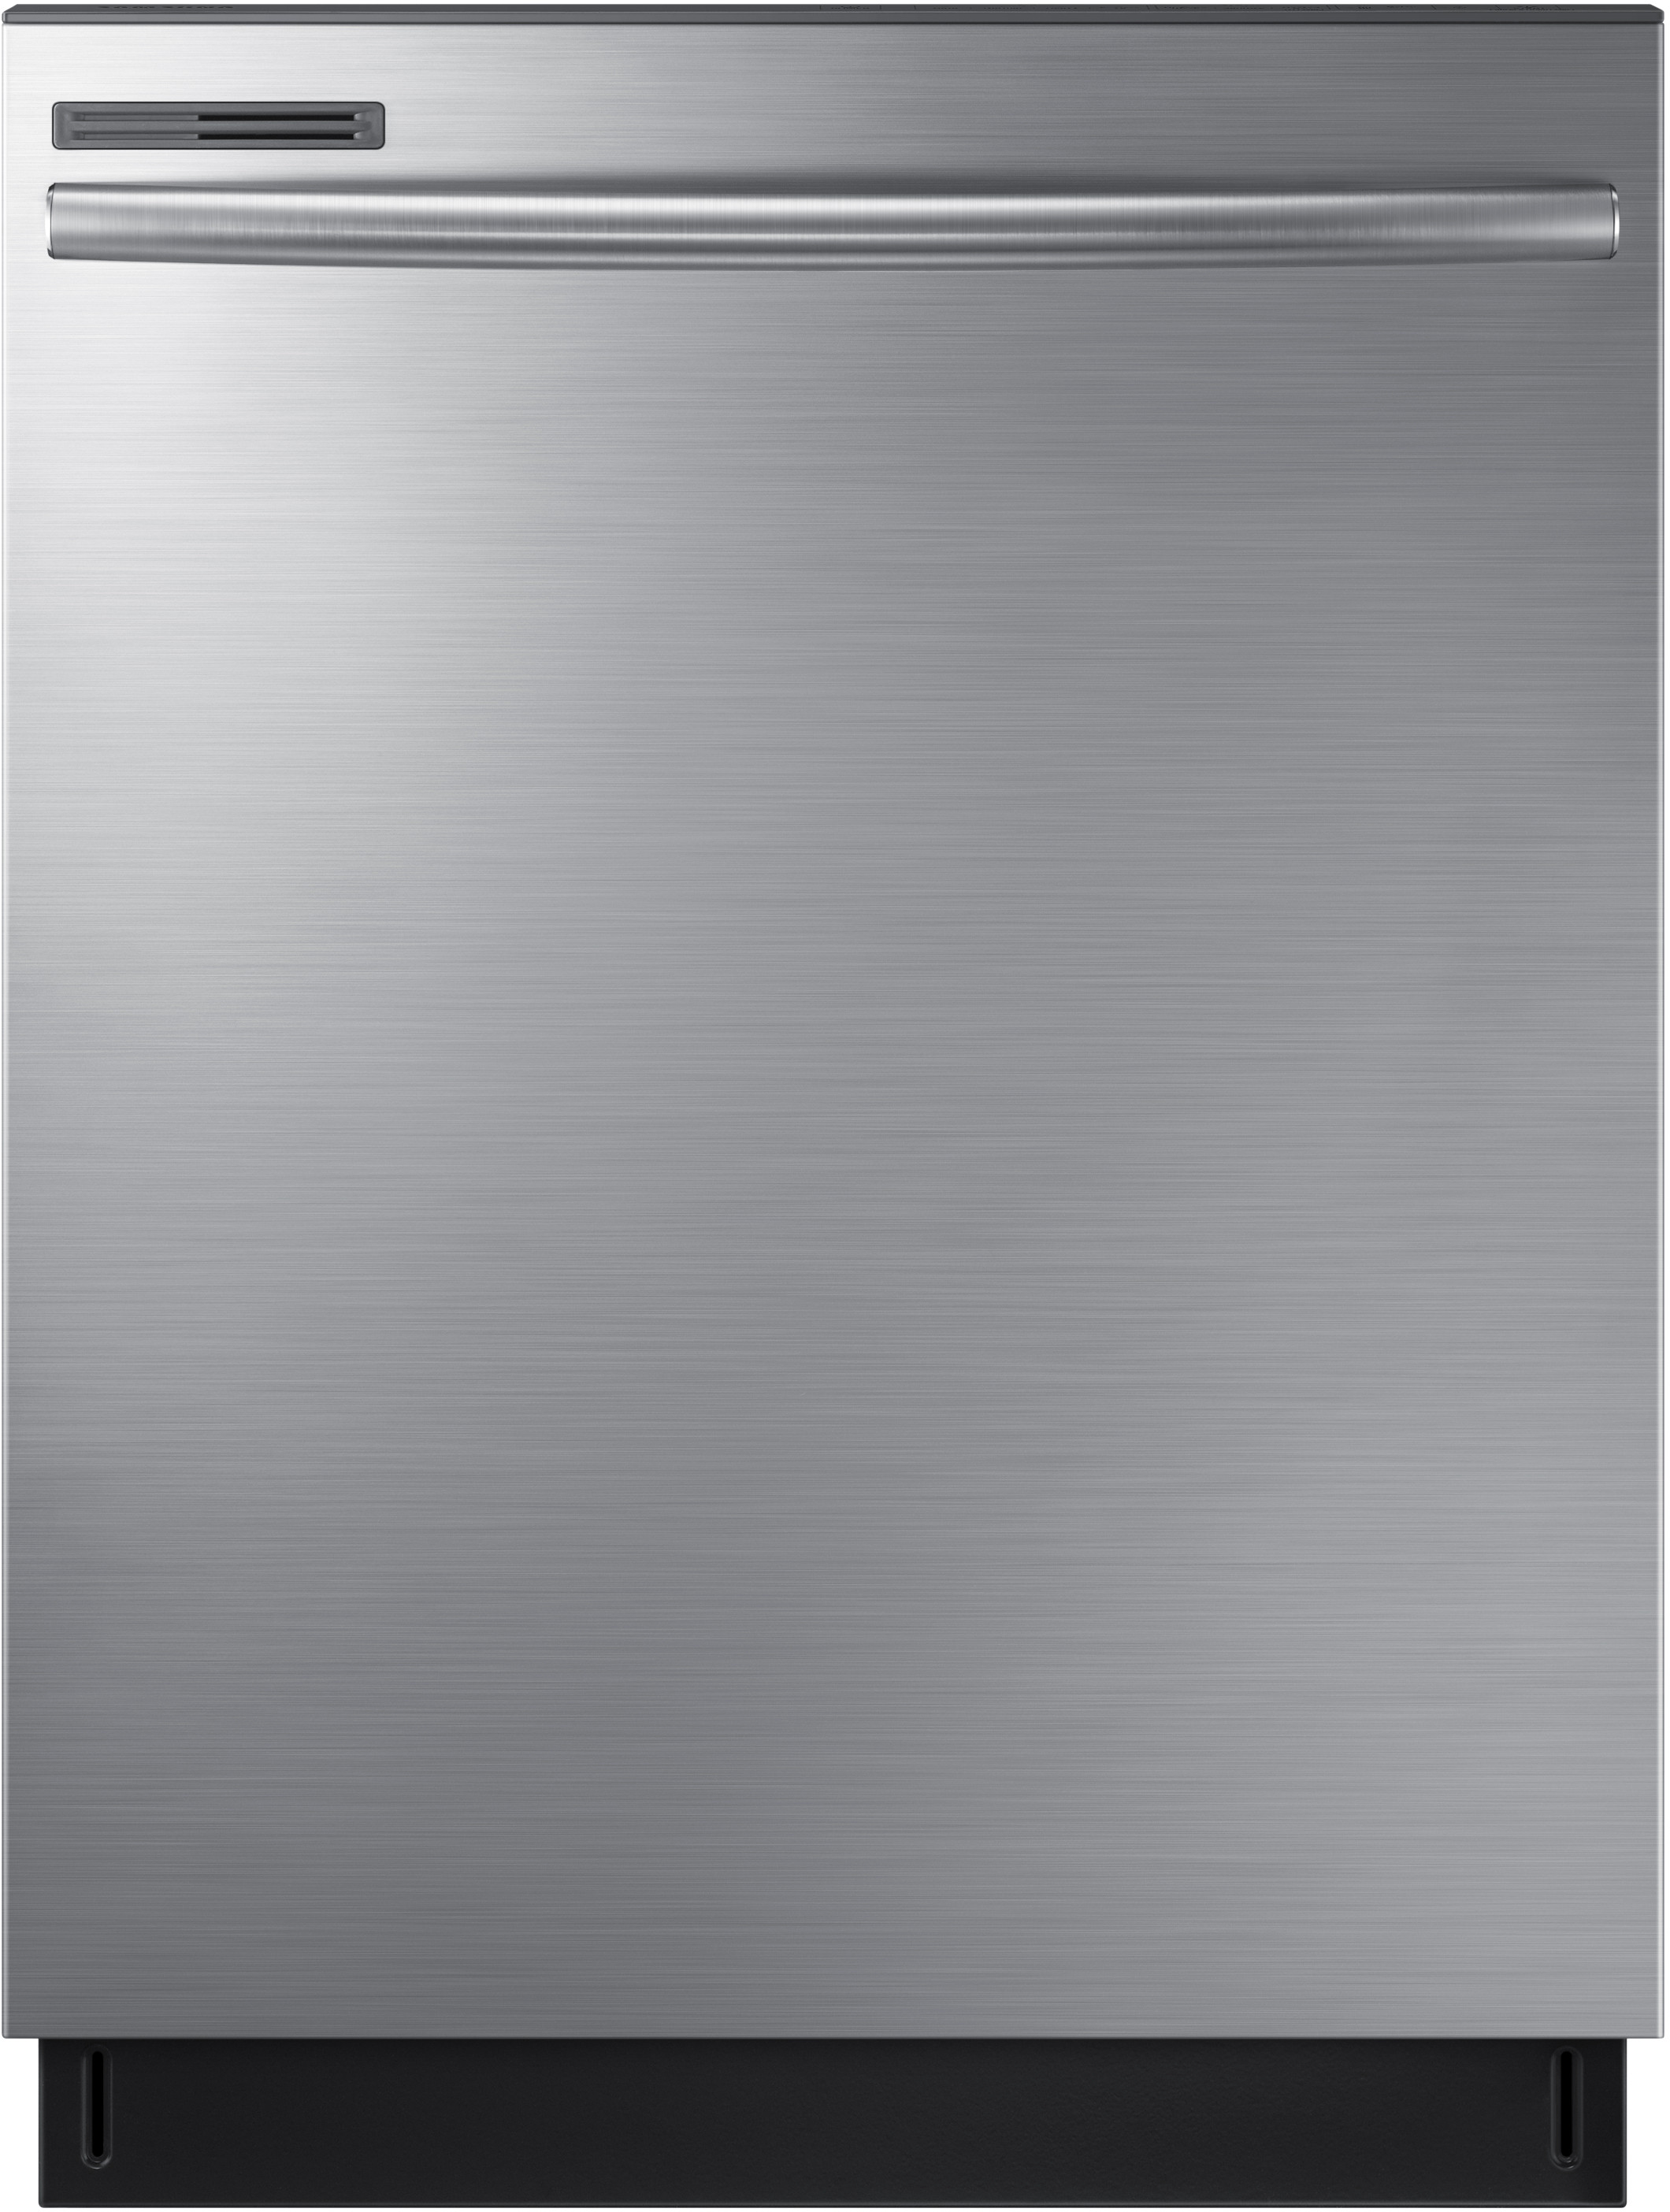 Samsung Dw80m2020us Fully Integrated Dishwasher With Adjustable Rack Nsf Certified Sanitize Digital Leak Sensor Advanced Wash System Integrated Touch Control Child Lock 4 Wash Cycles 14 Place Setting Capacity Silence Rating Of